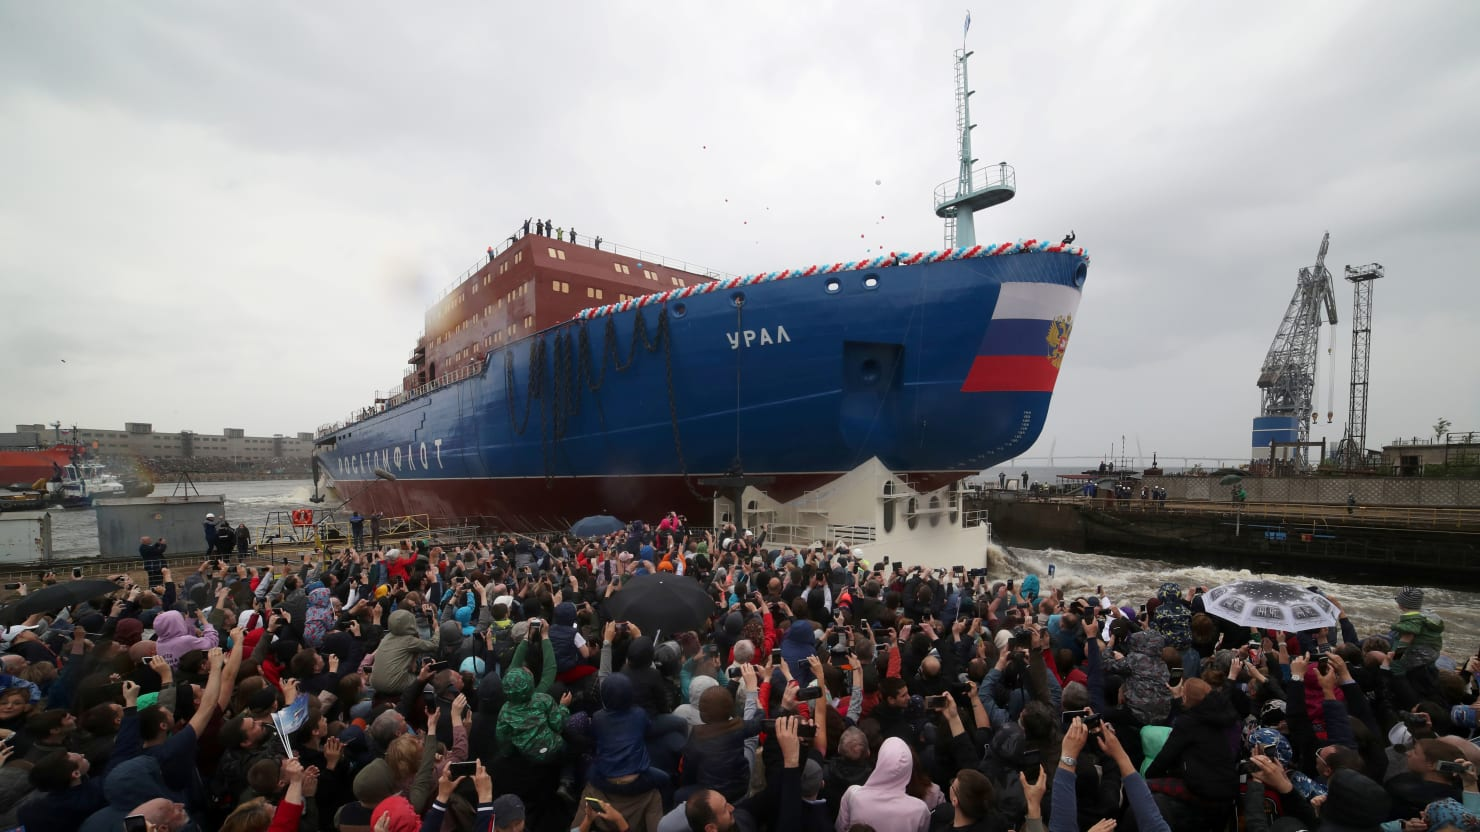 Russia Launches Powerful Nuclear Icebreaker to Tap Arctic's Commercial Potential